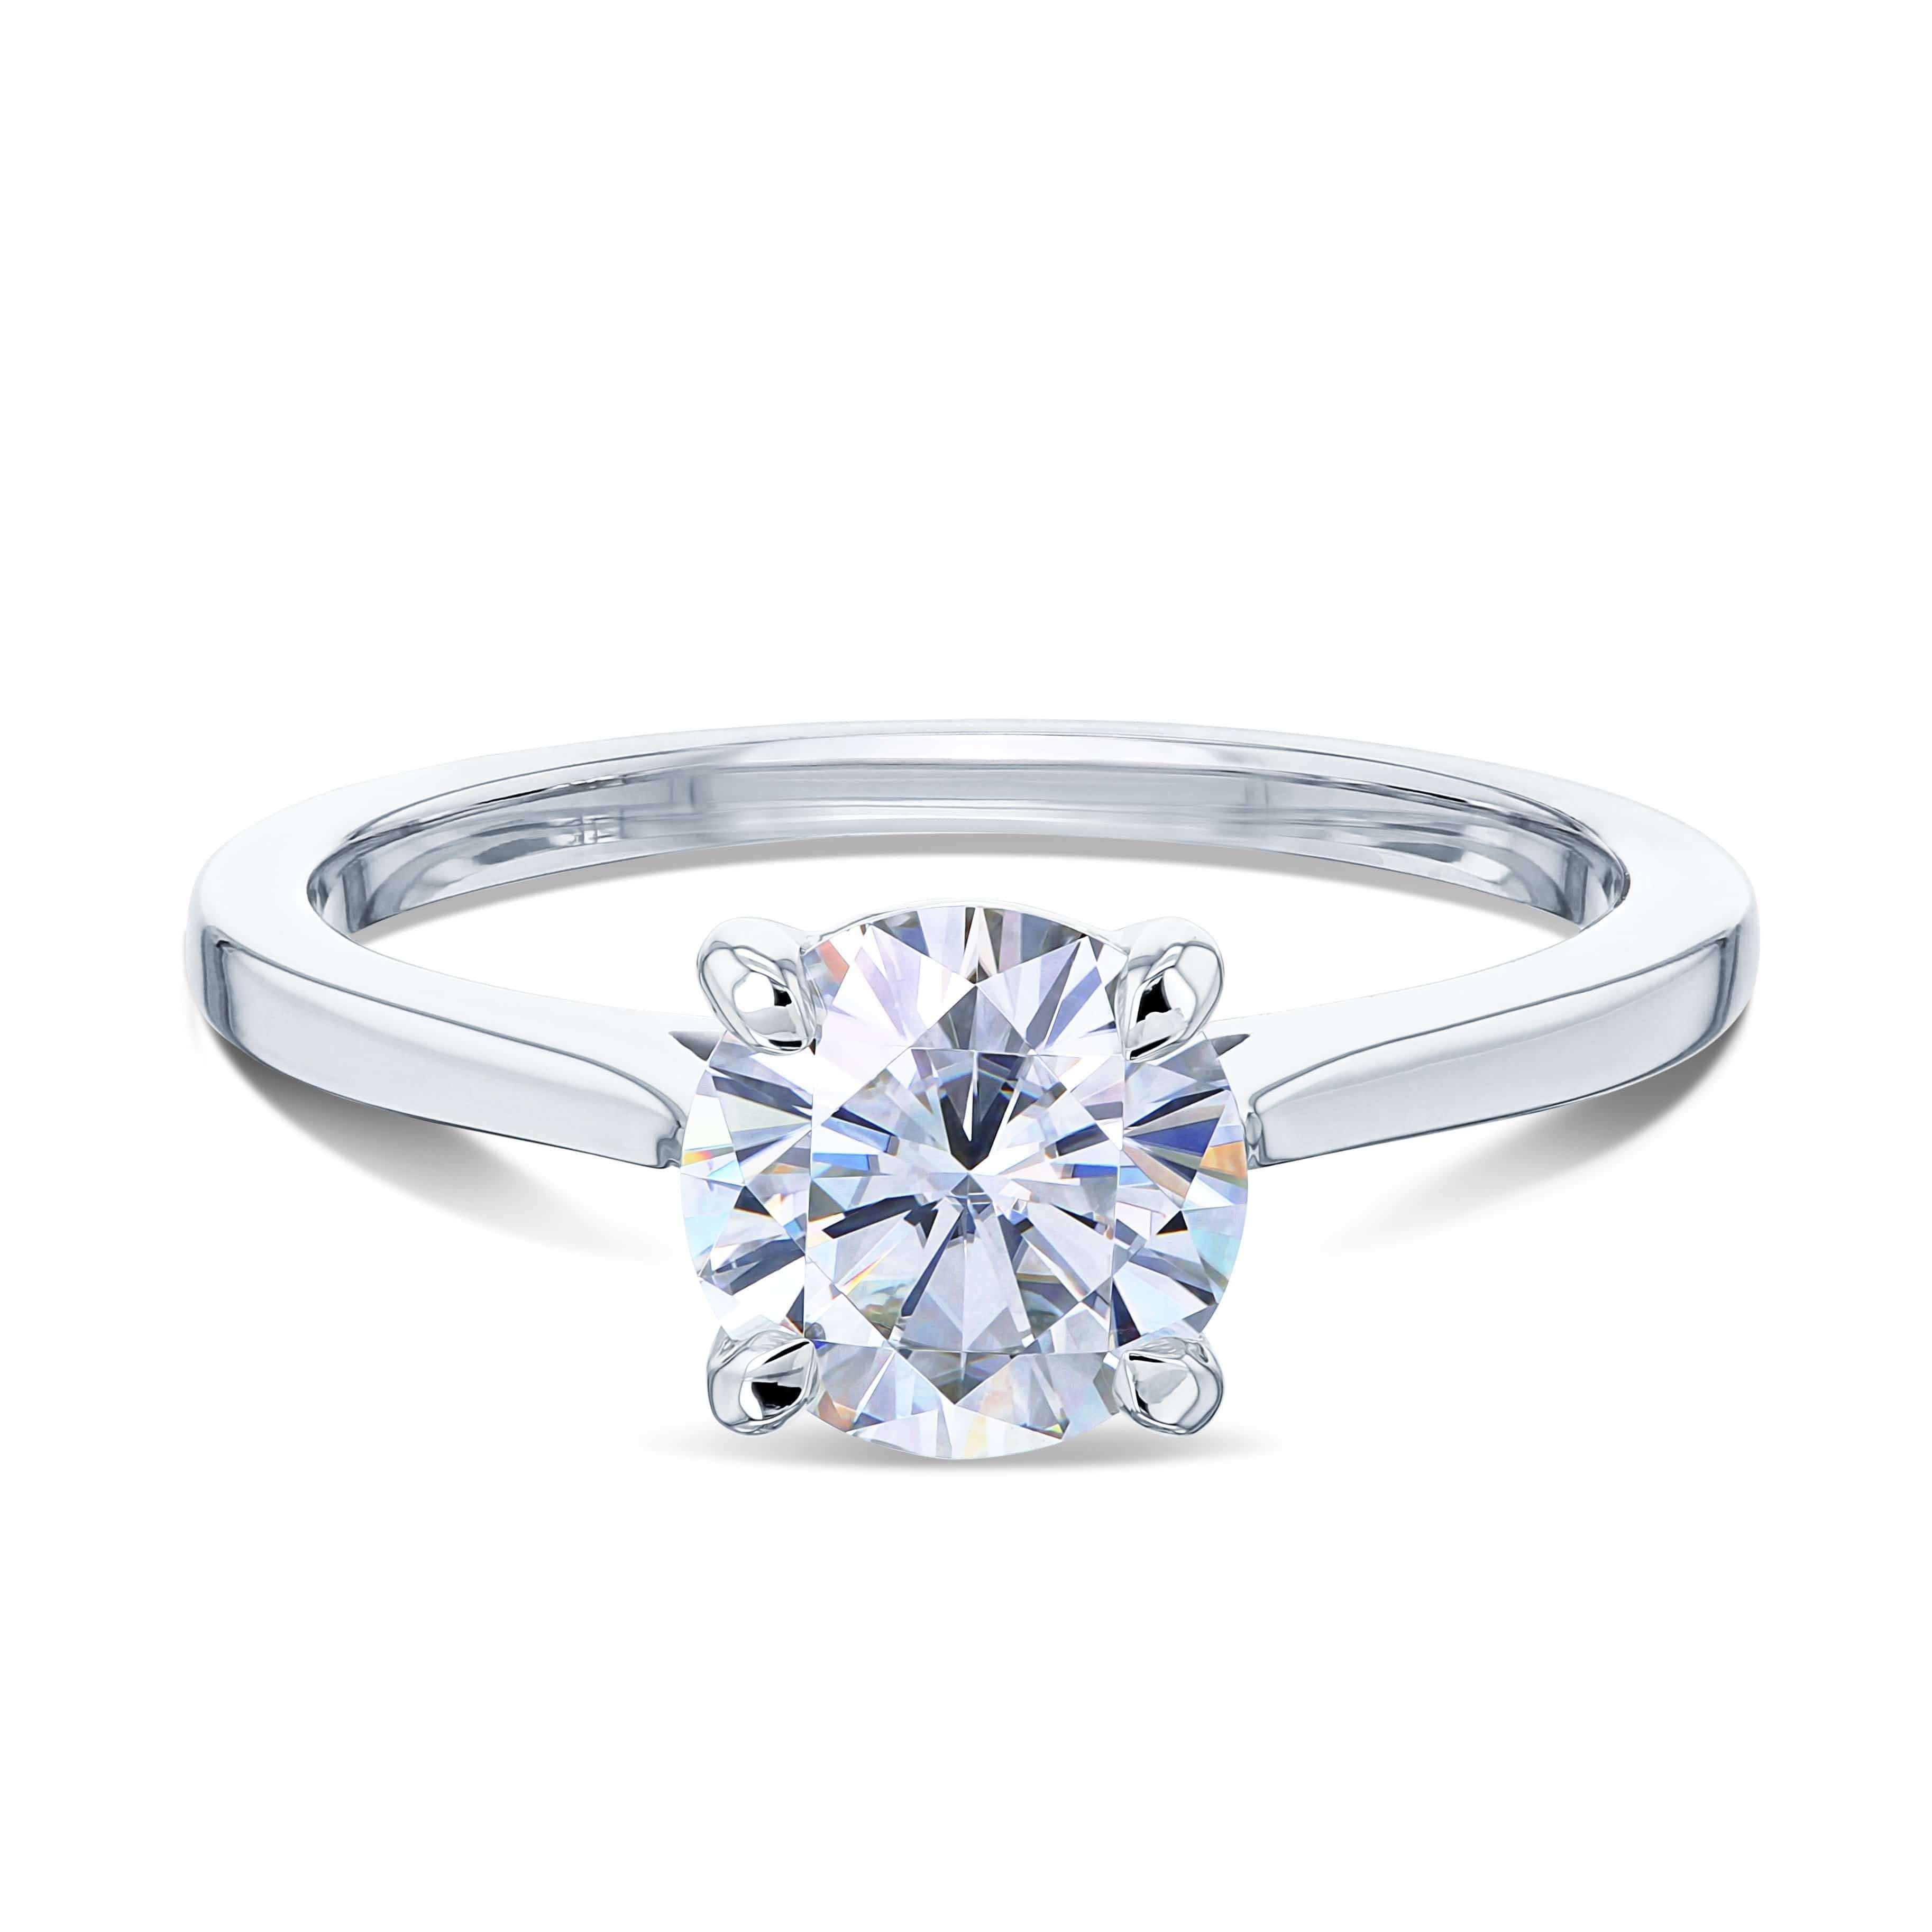 Top 1ct Round Forever One Moissanite Solitaire Ring - white-gold 7.0